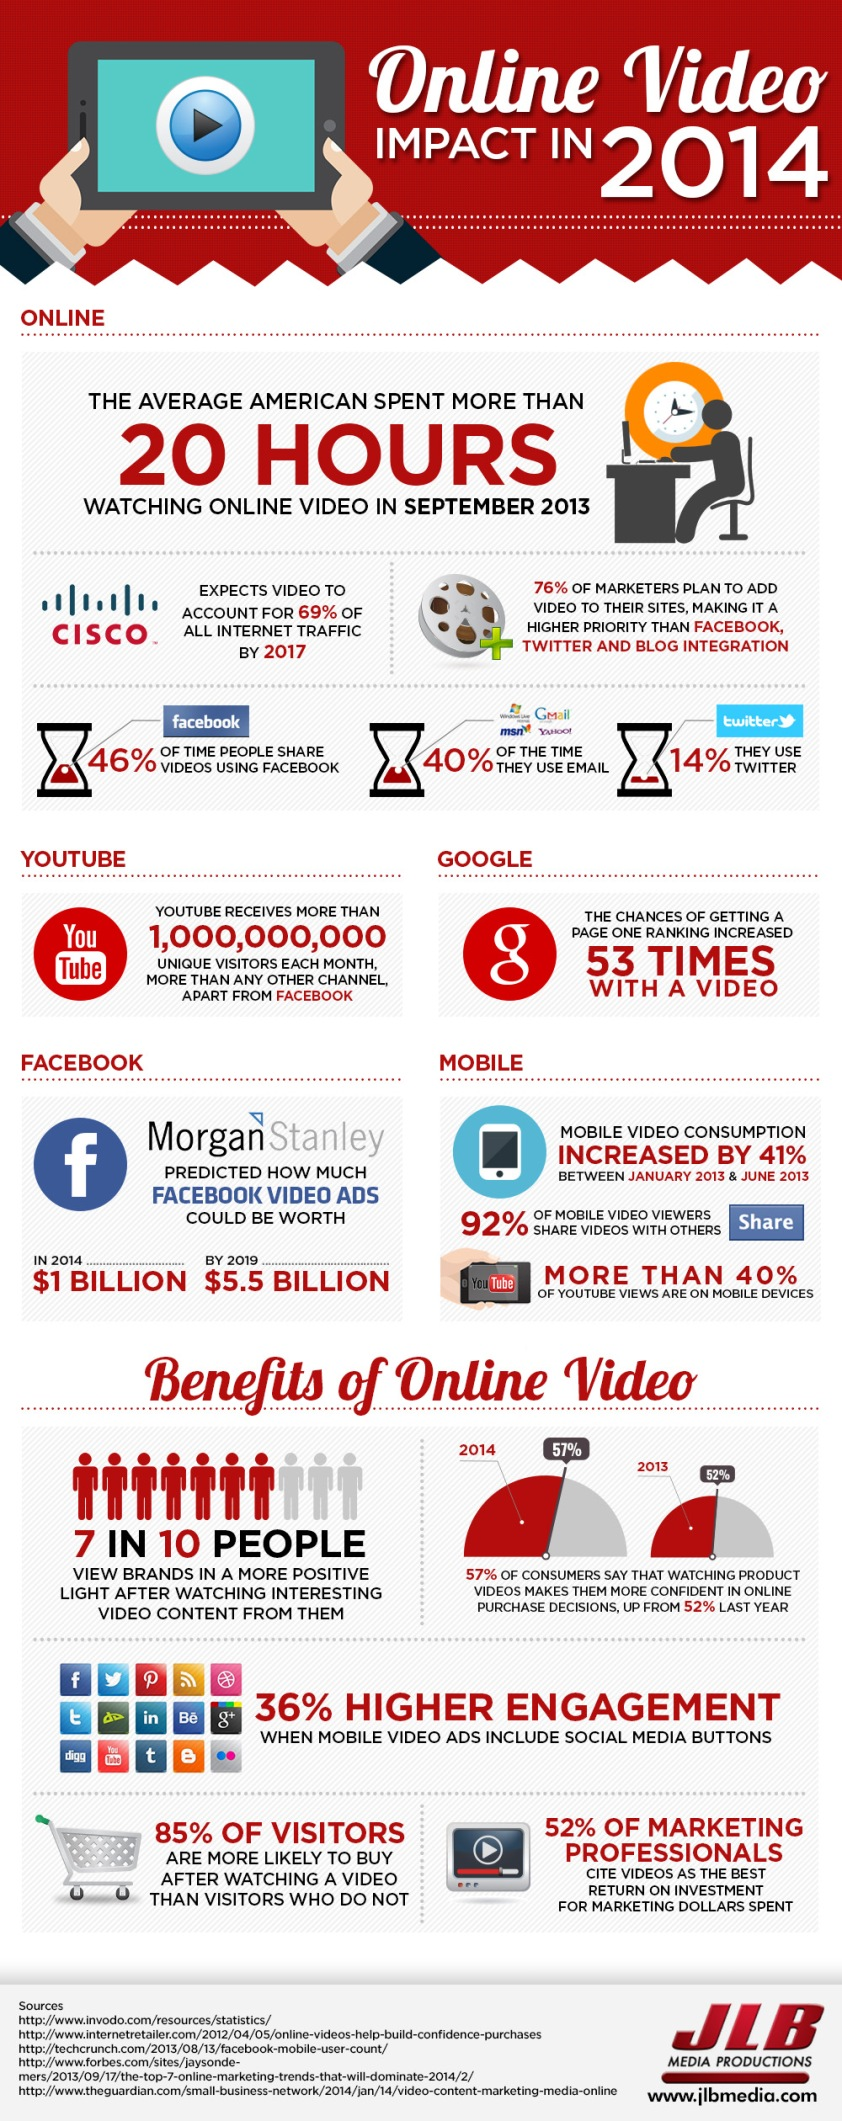 Online Video Impact in 2014